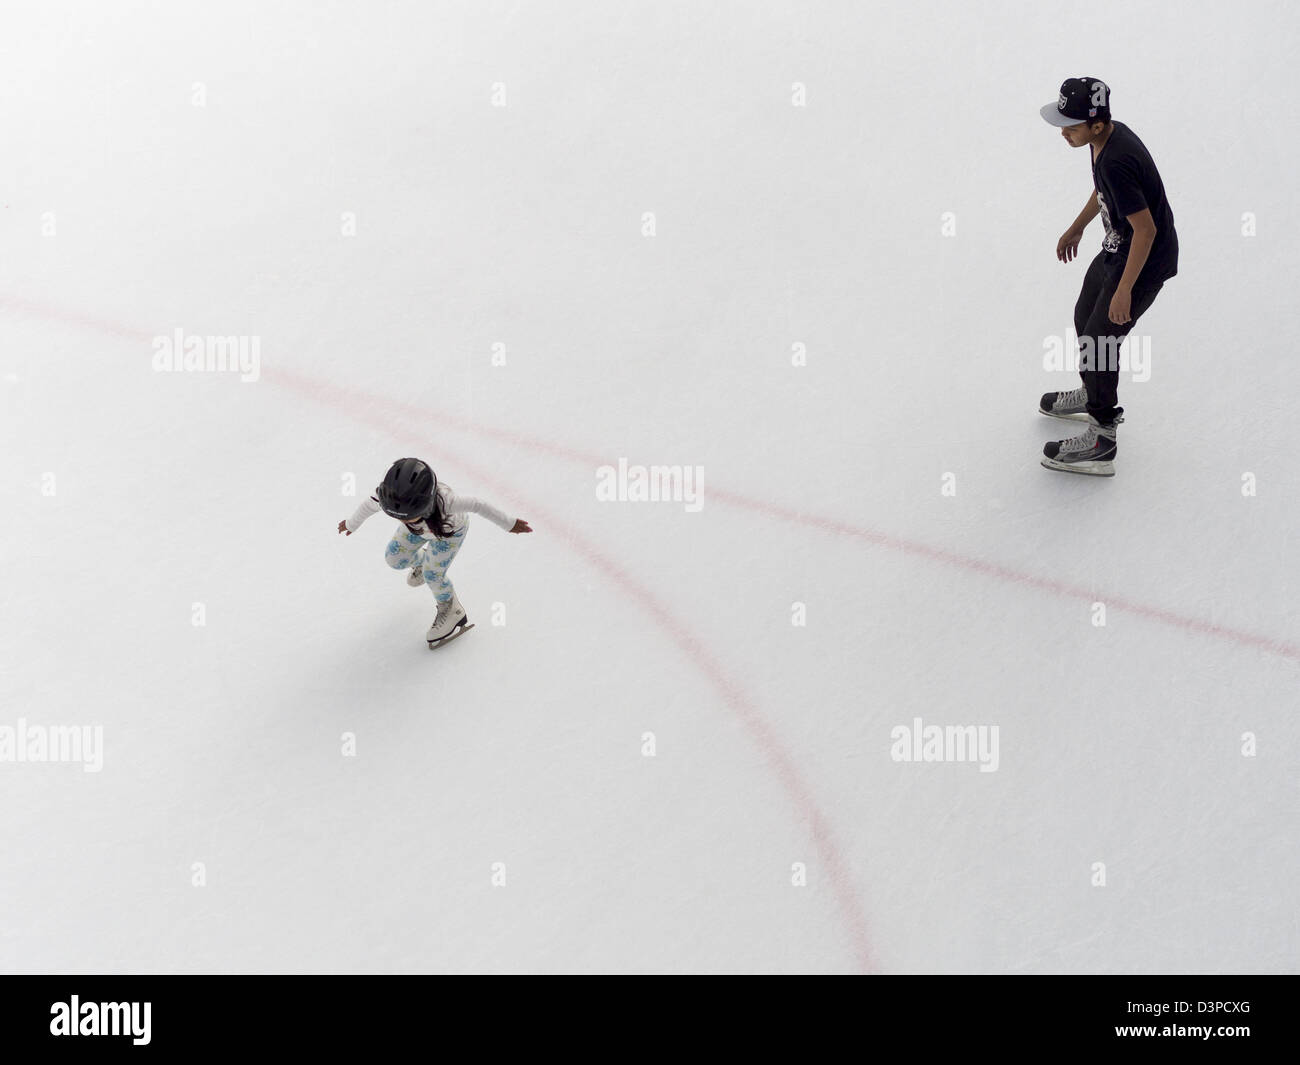 Learning to Skate. A young brother watches protectively or tentatively as his sister takes off on her skates. - Stock Image